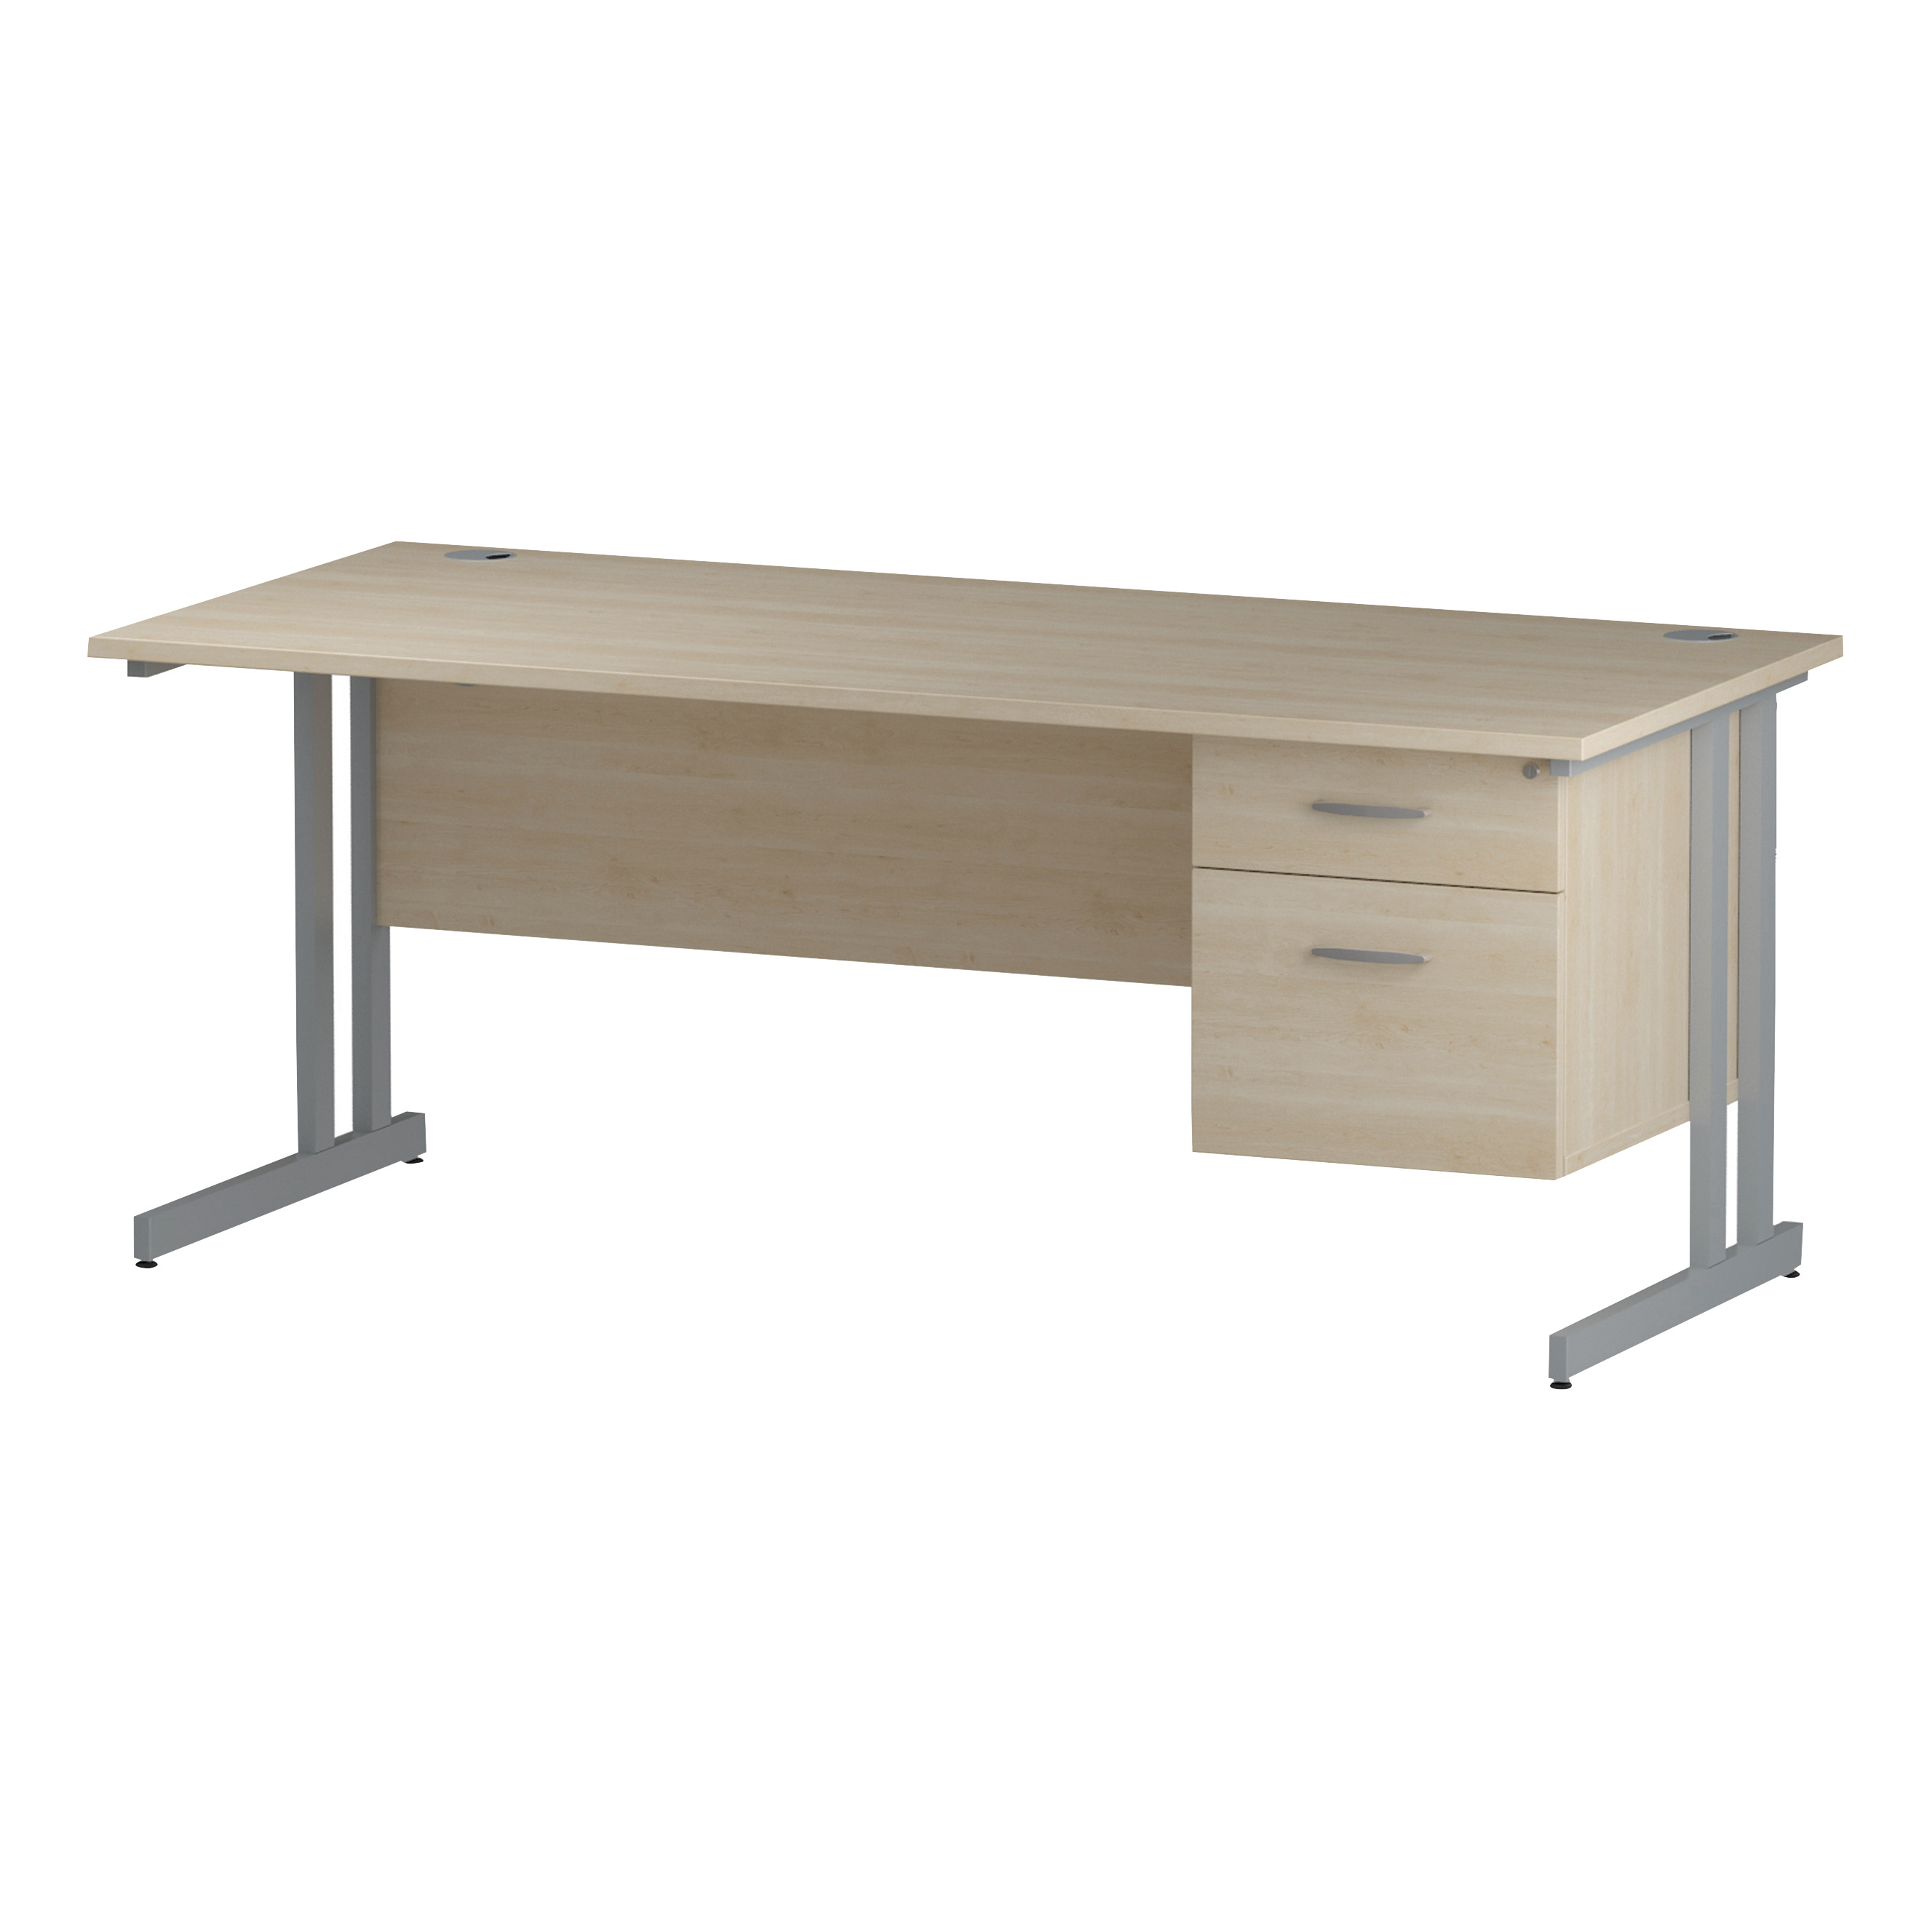 Trexus Rectangular Desk Silver Cantilever Leg 1800x800mm Fixed Pedestal 2 Drawers Maple Ref I002434